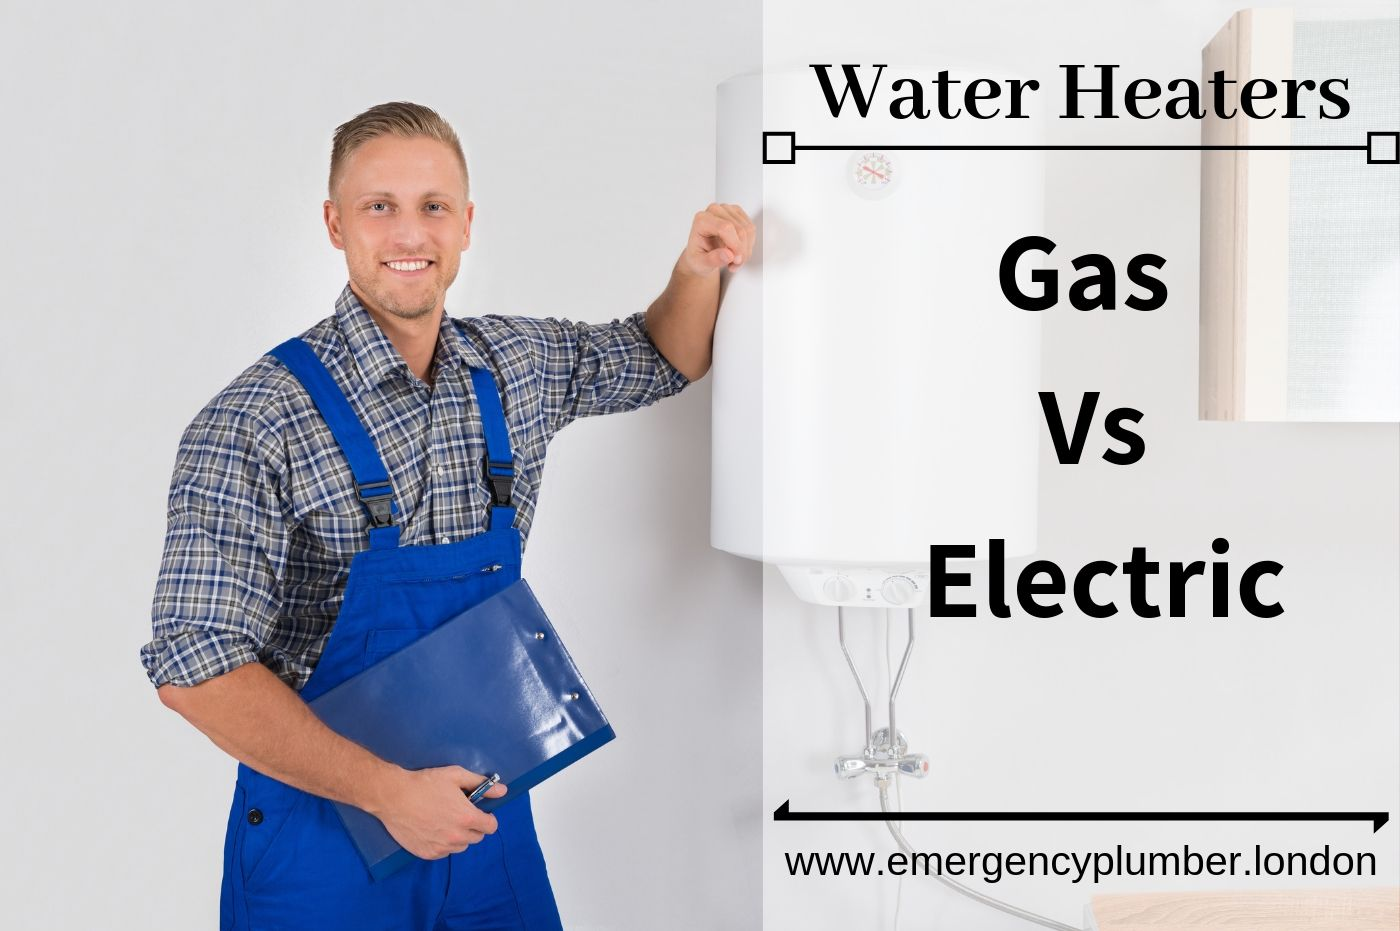 Gas vs Electric Water Heater - Pros and Cons - How to Choose?